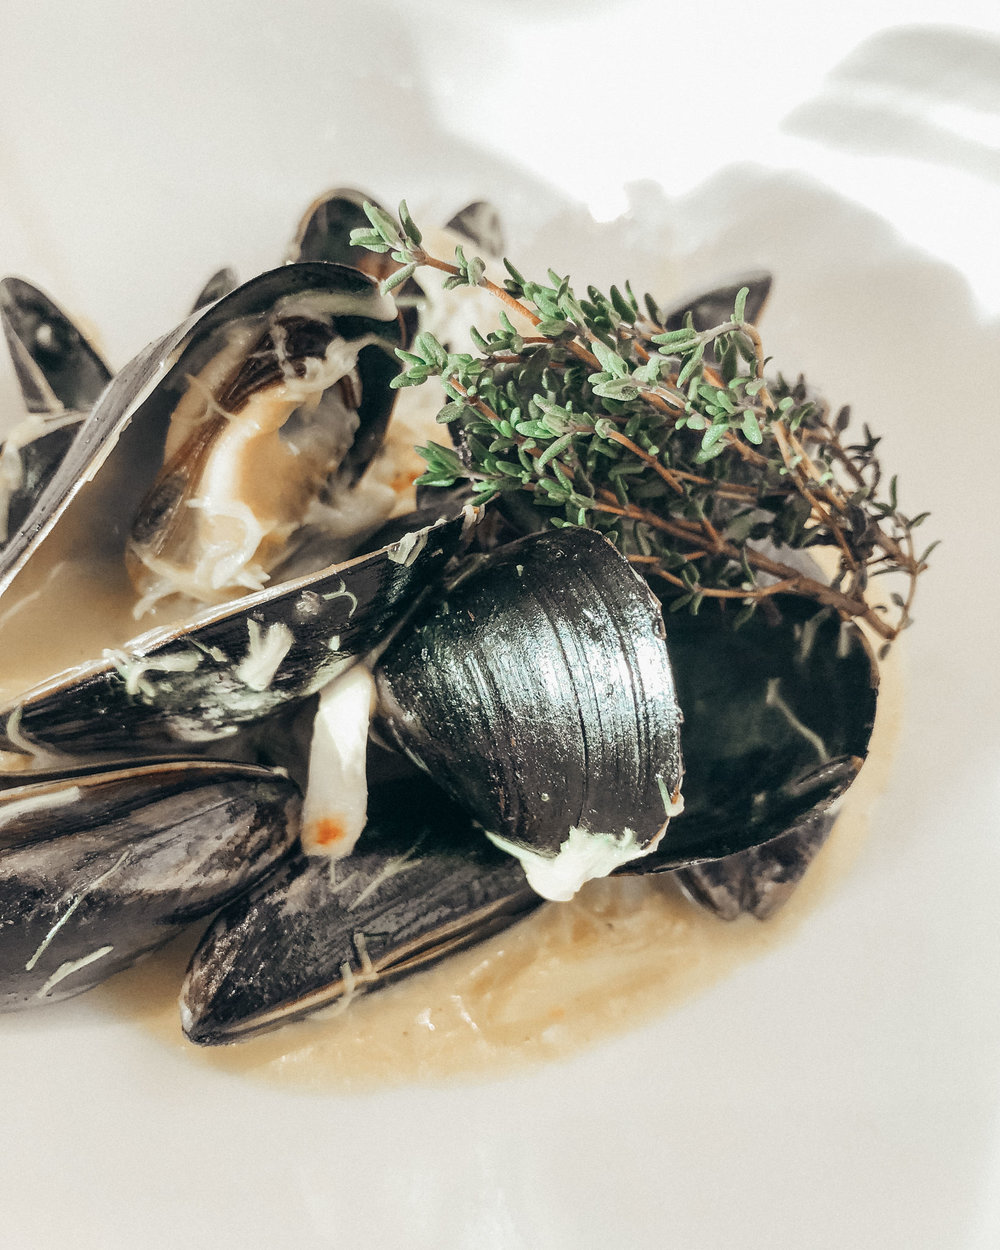 viking mussels